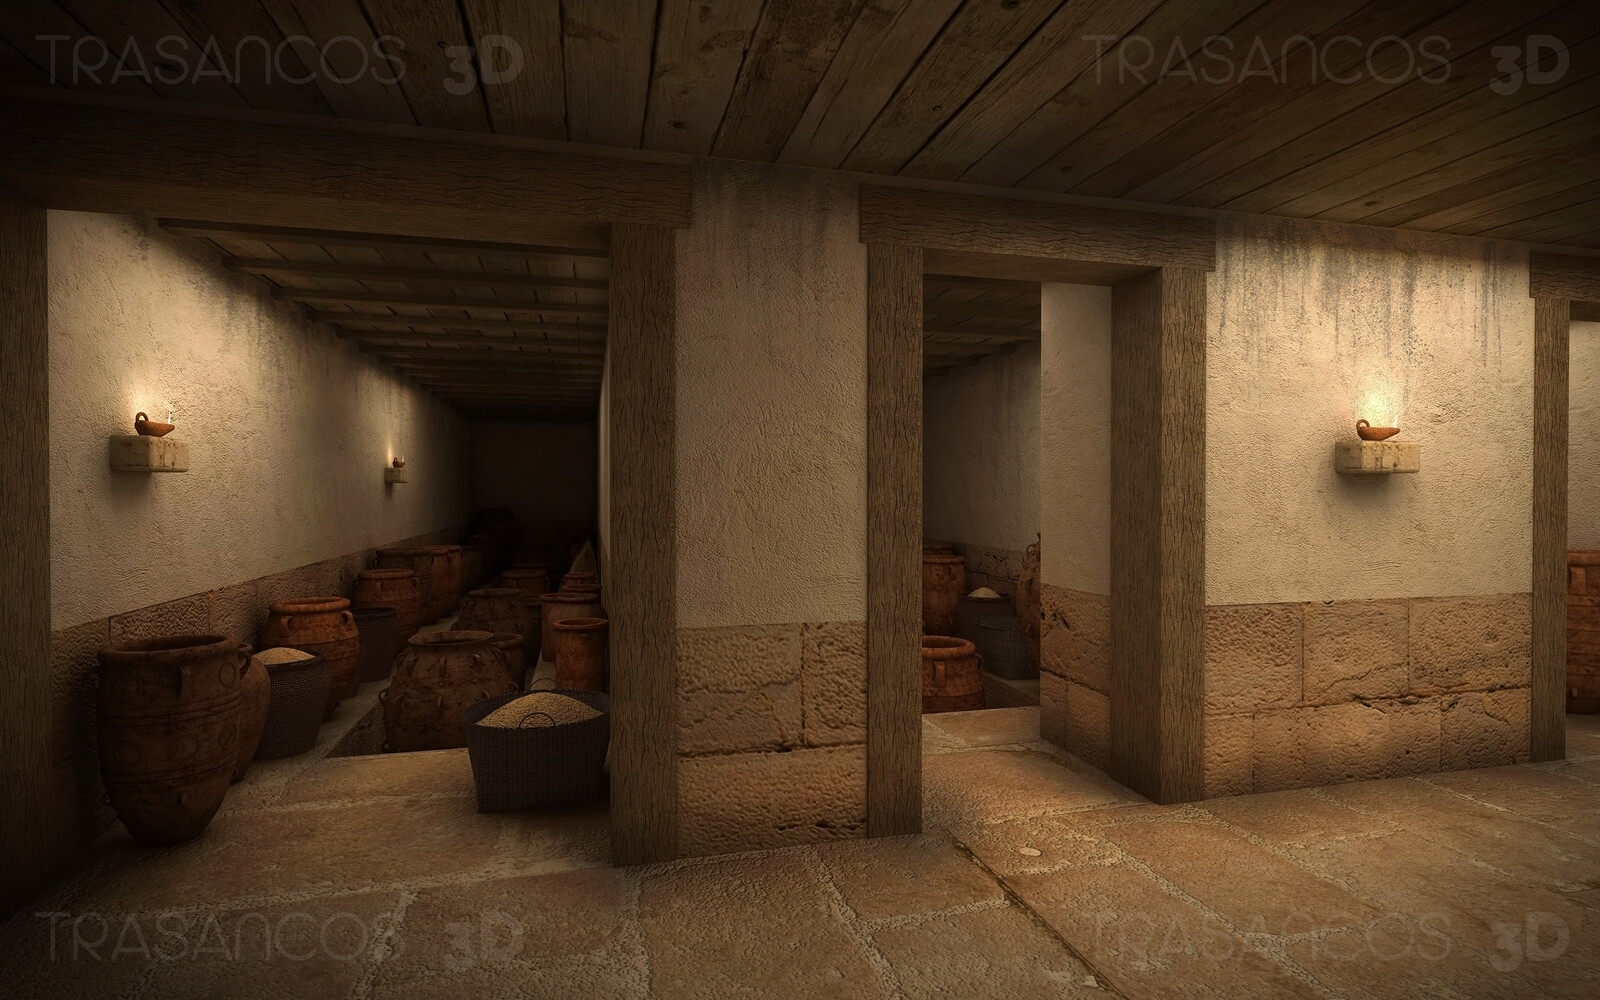 Interior of the storage rooms in the Palace of Cnossos. Modeled in collaboration with: - Diego Blanco